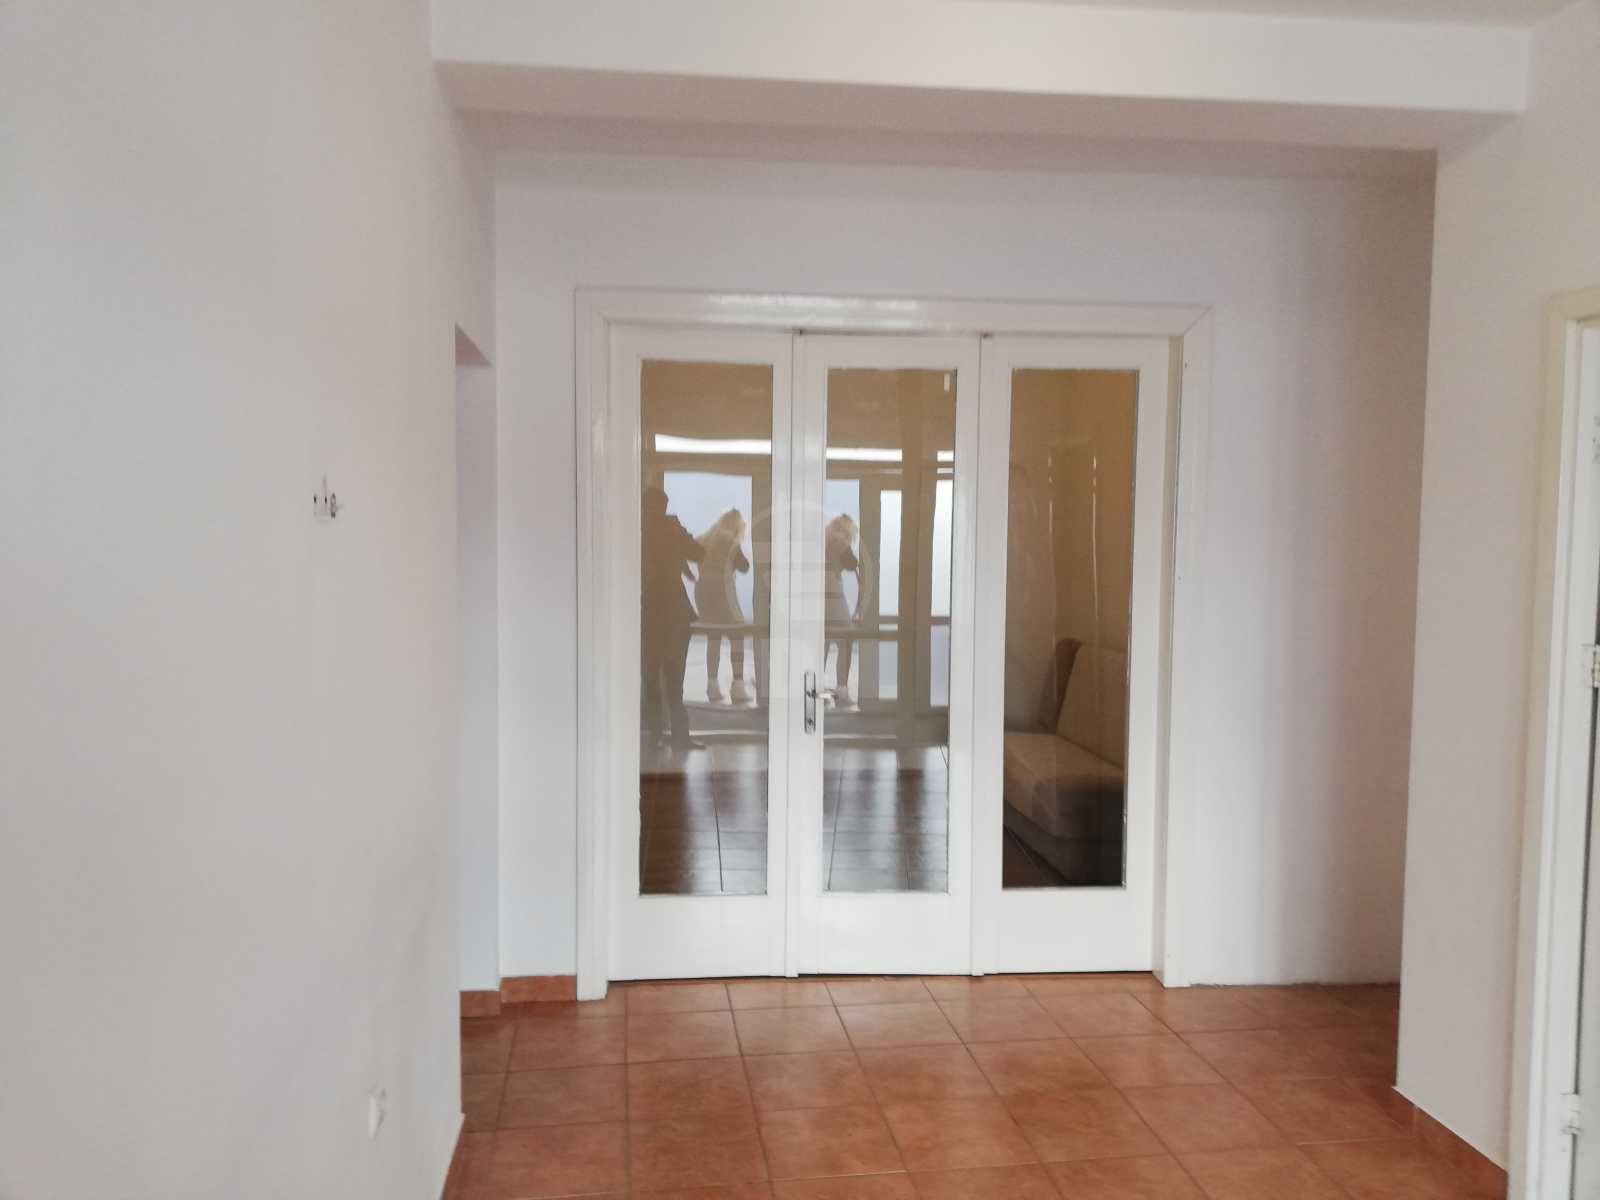 Apartment for rent 3 rooms, APCJ293237-8